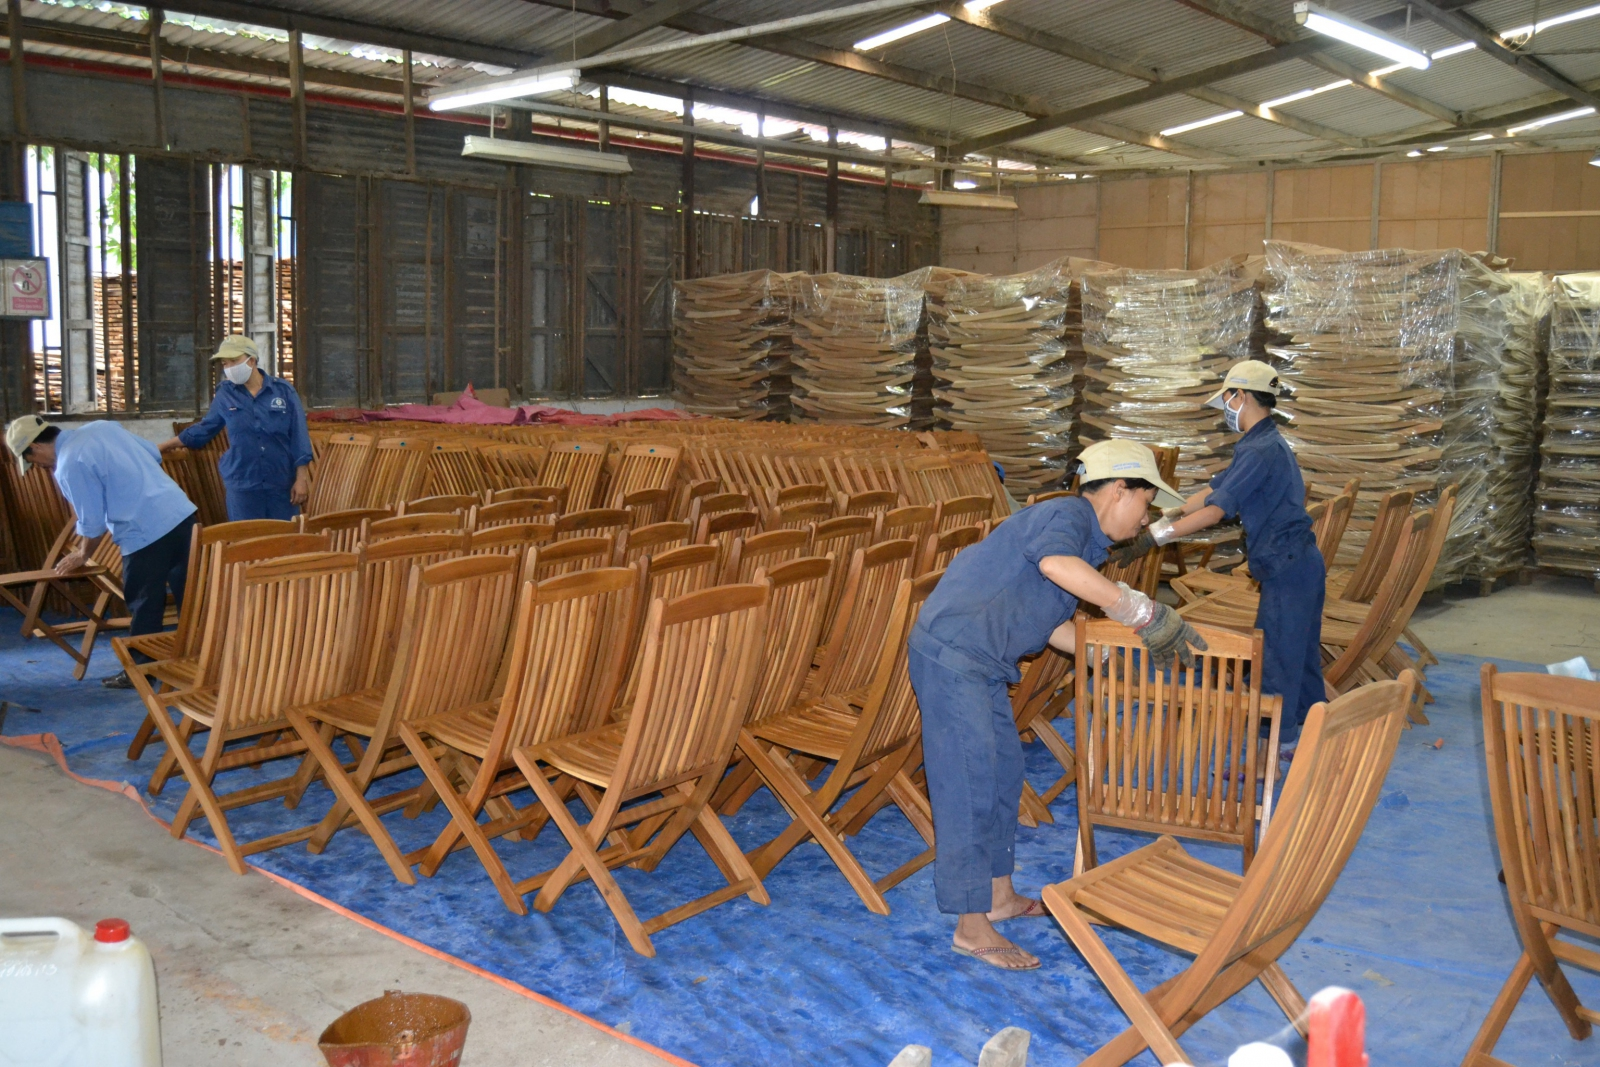 Wwf demand for fsc certified furniture offers a profitable future for timber growers in vietnam